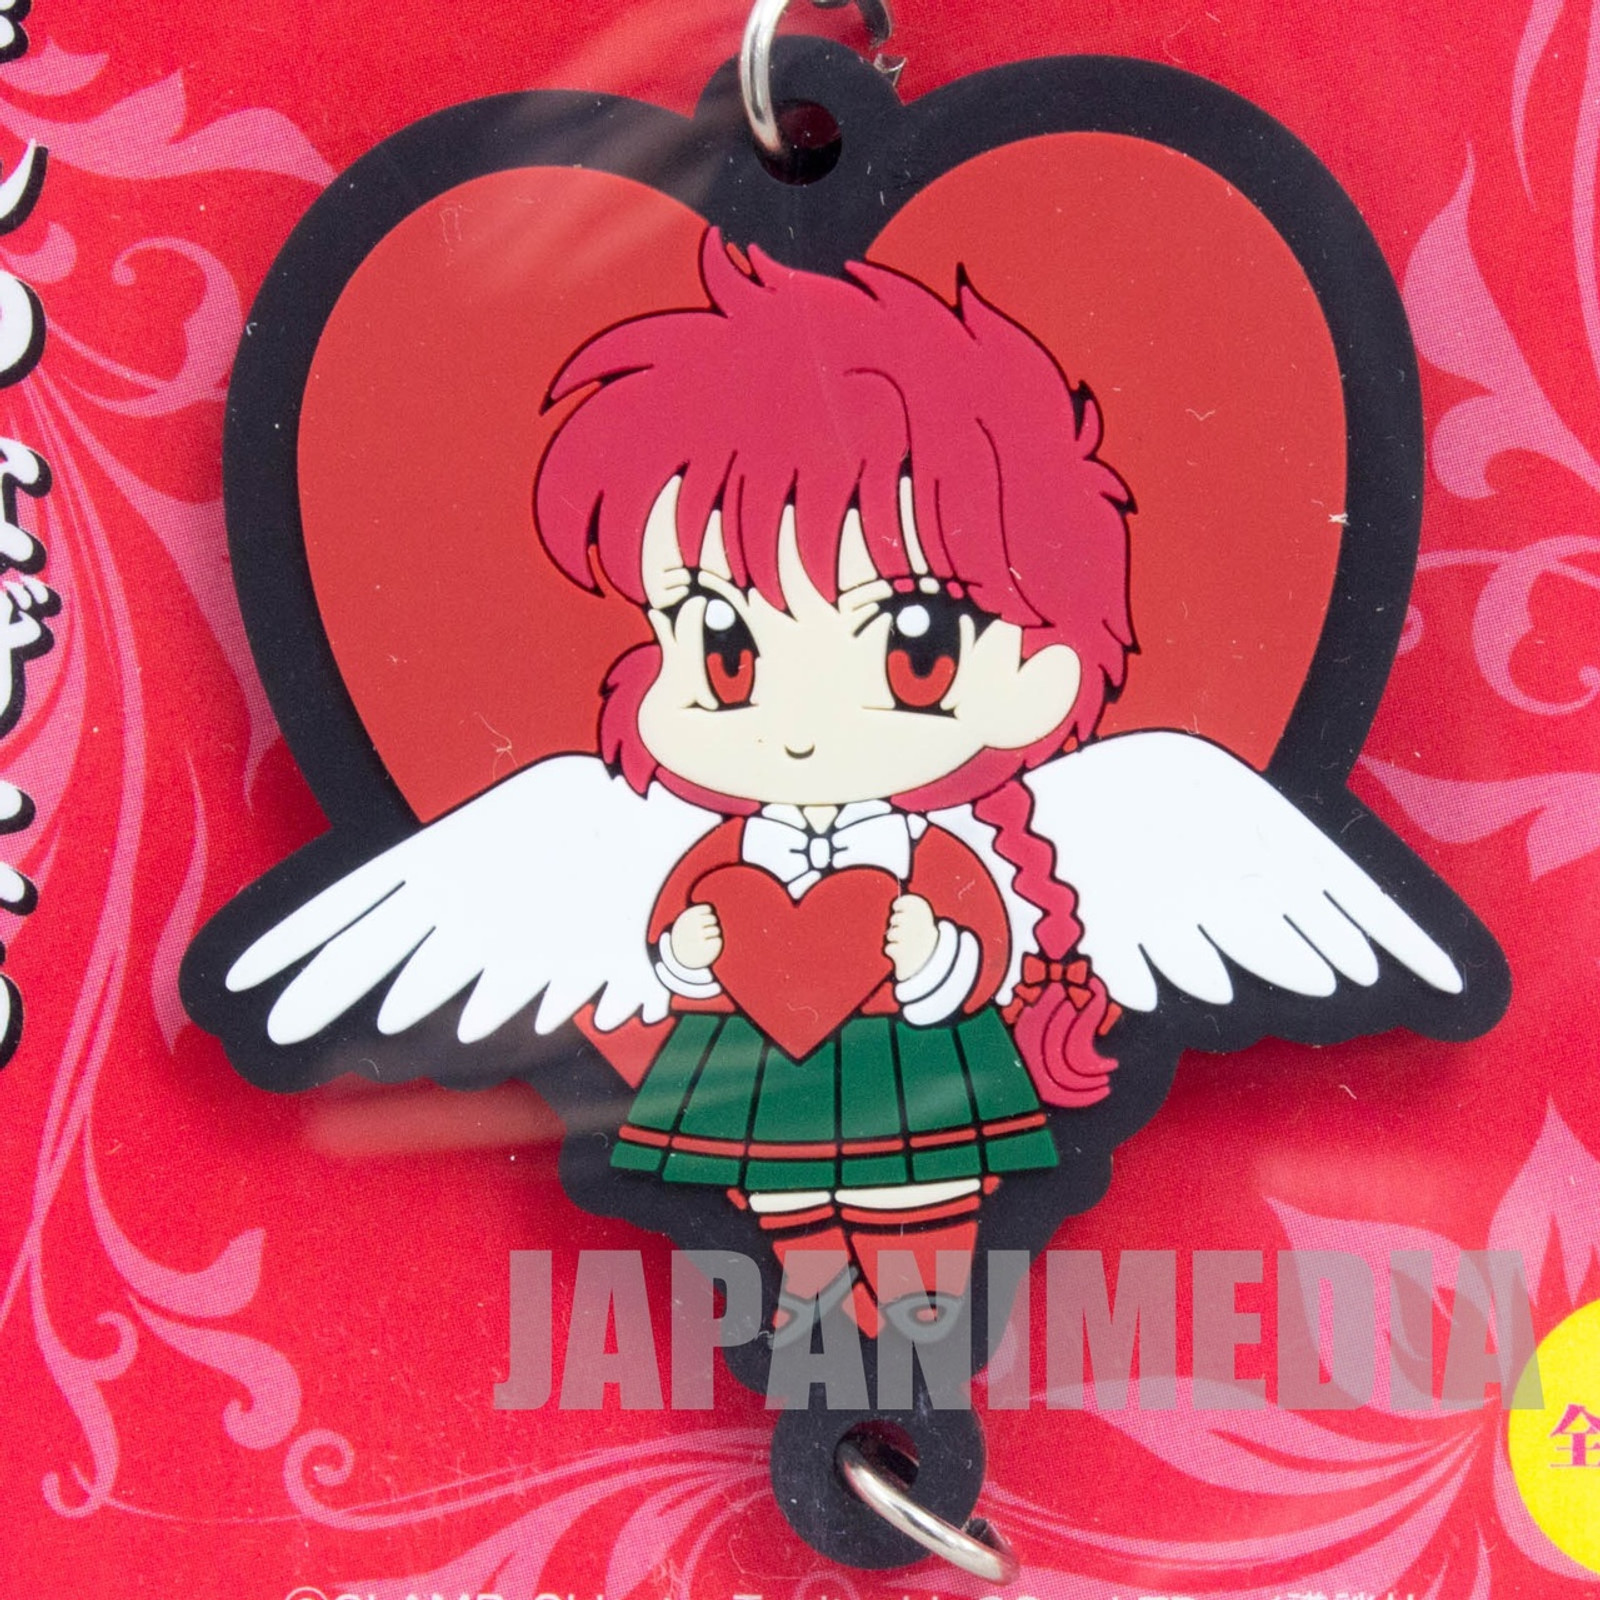 Magic Knight Rayearth Hikaru Shido Mascot Rubber Strap Clamp JAPAN ANIME